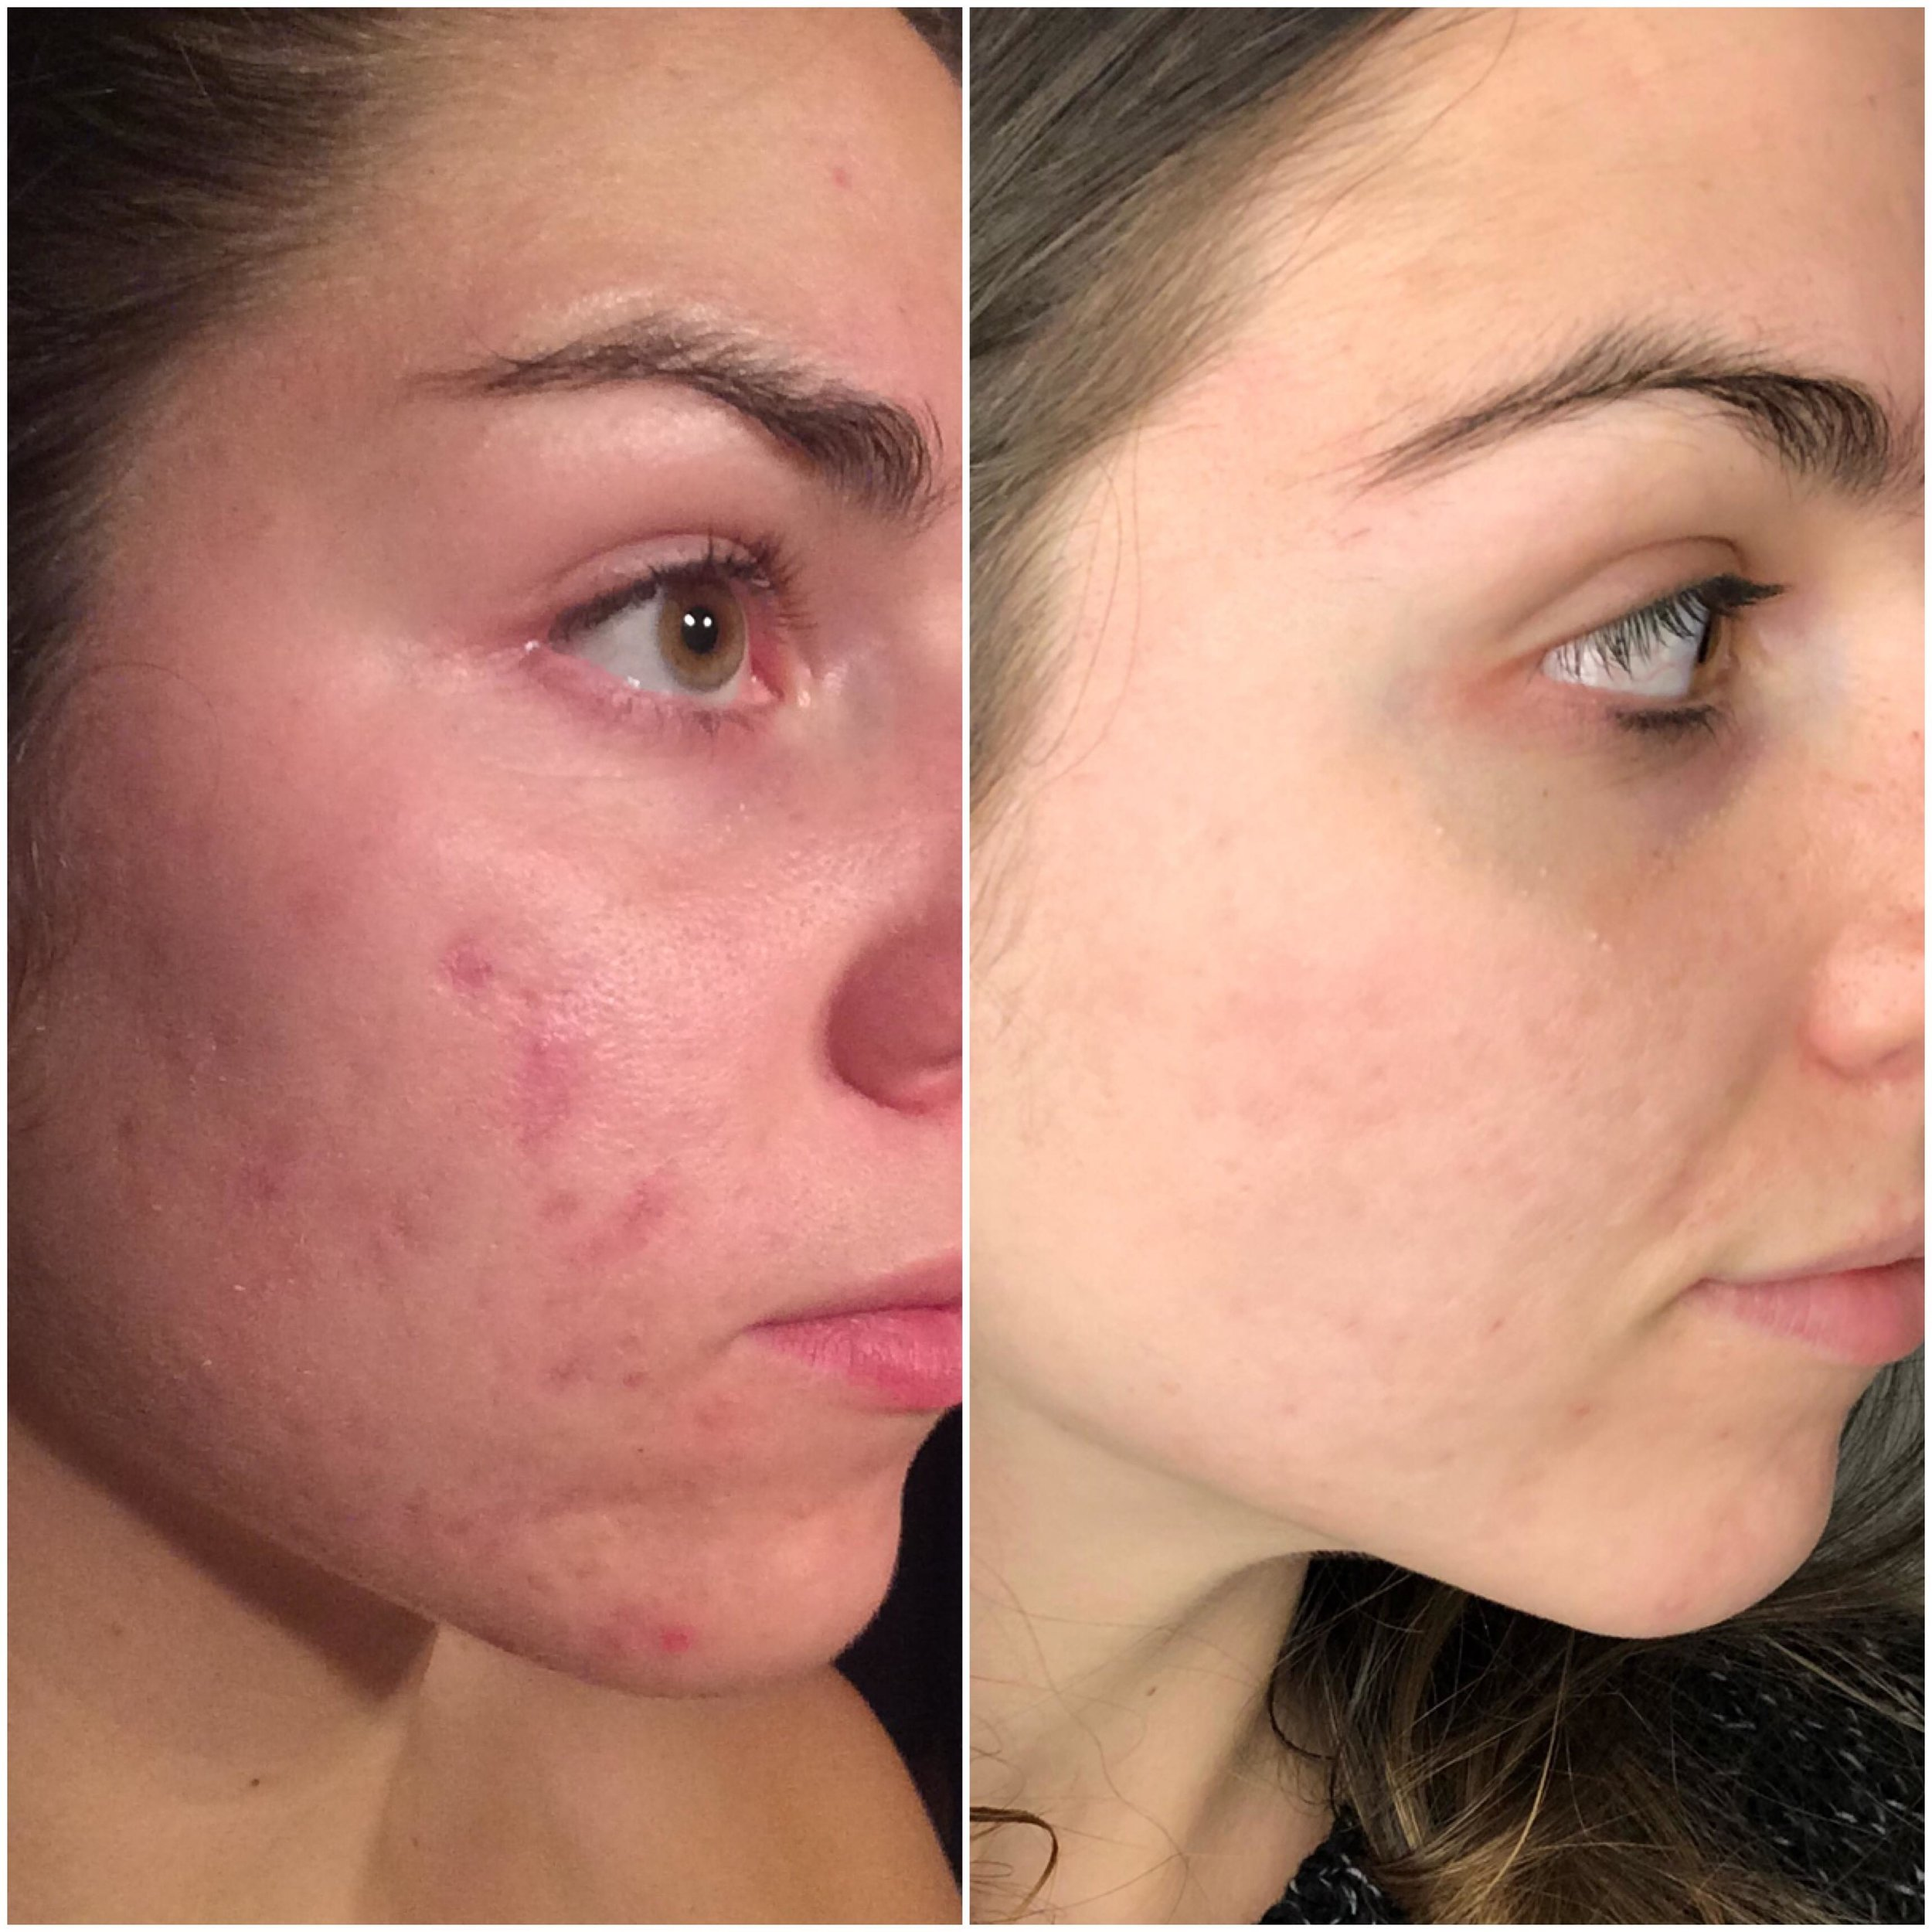 This is an unconventional before and after - Ya'll it's not perfect. But my face doesn't hurt constantly and now what I'm working on most is scars. Blog post coming soon.